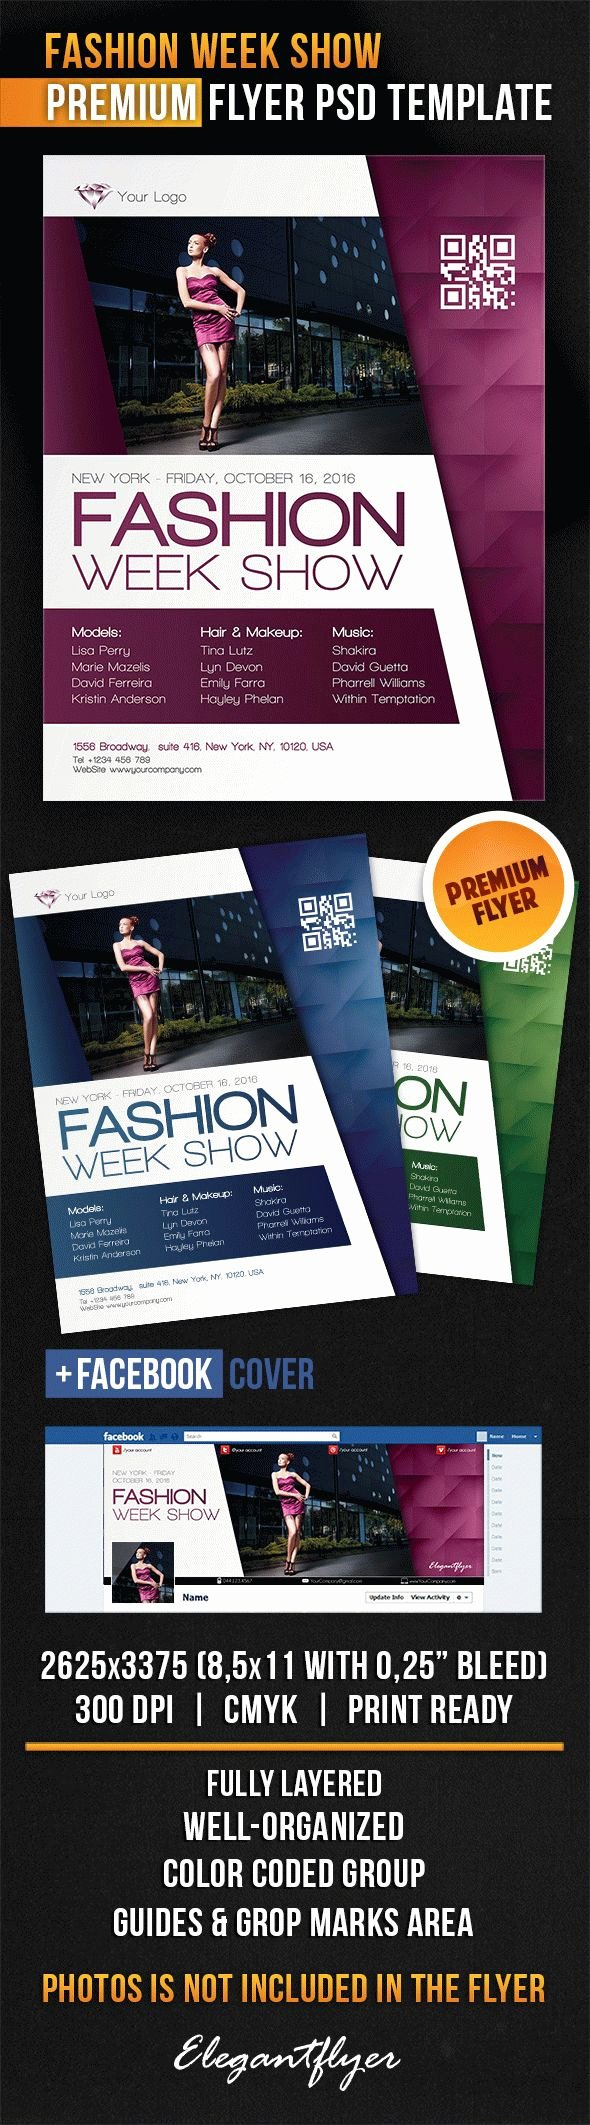 Fashion Show Flyer Template Unique Fashion Week Show Flyer Psd Template Cover